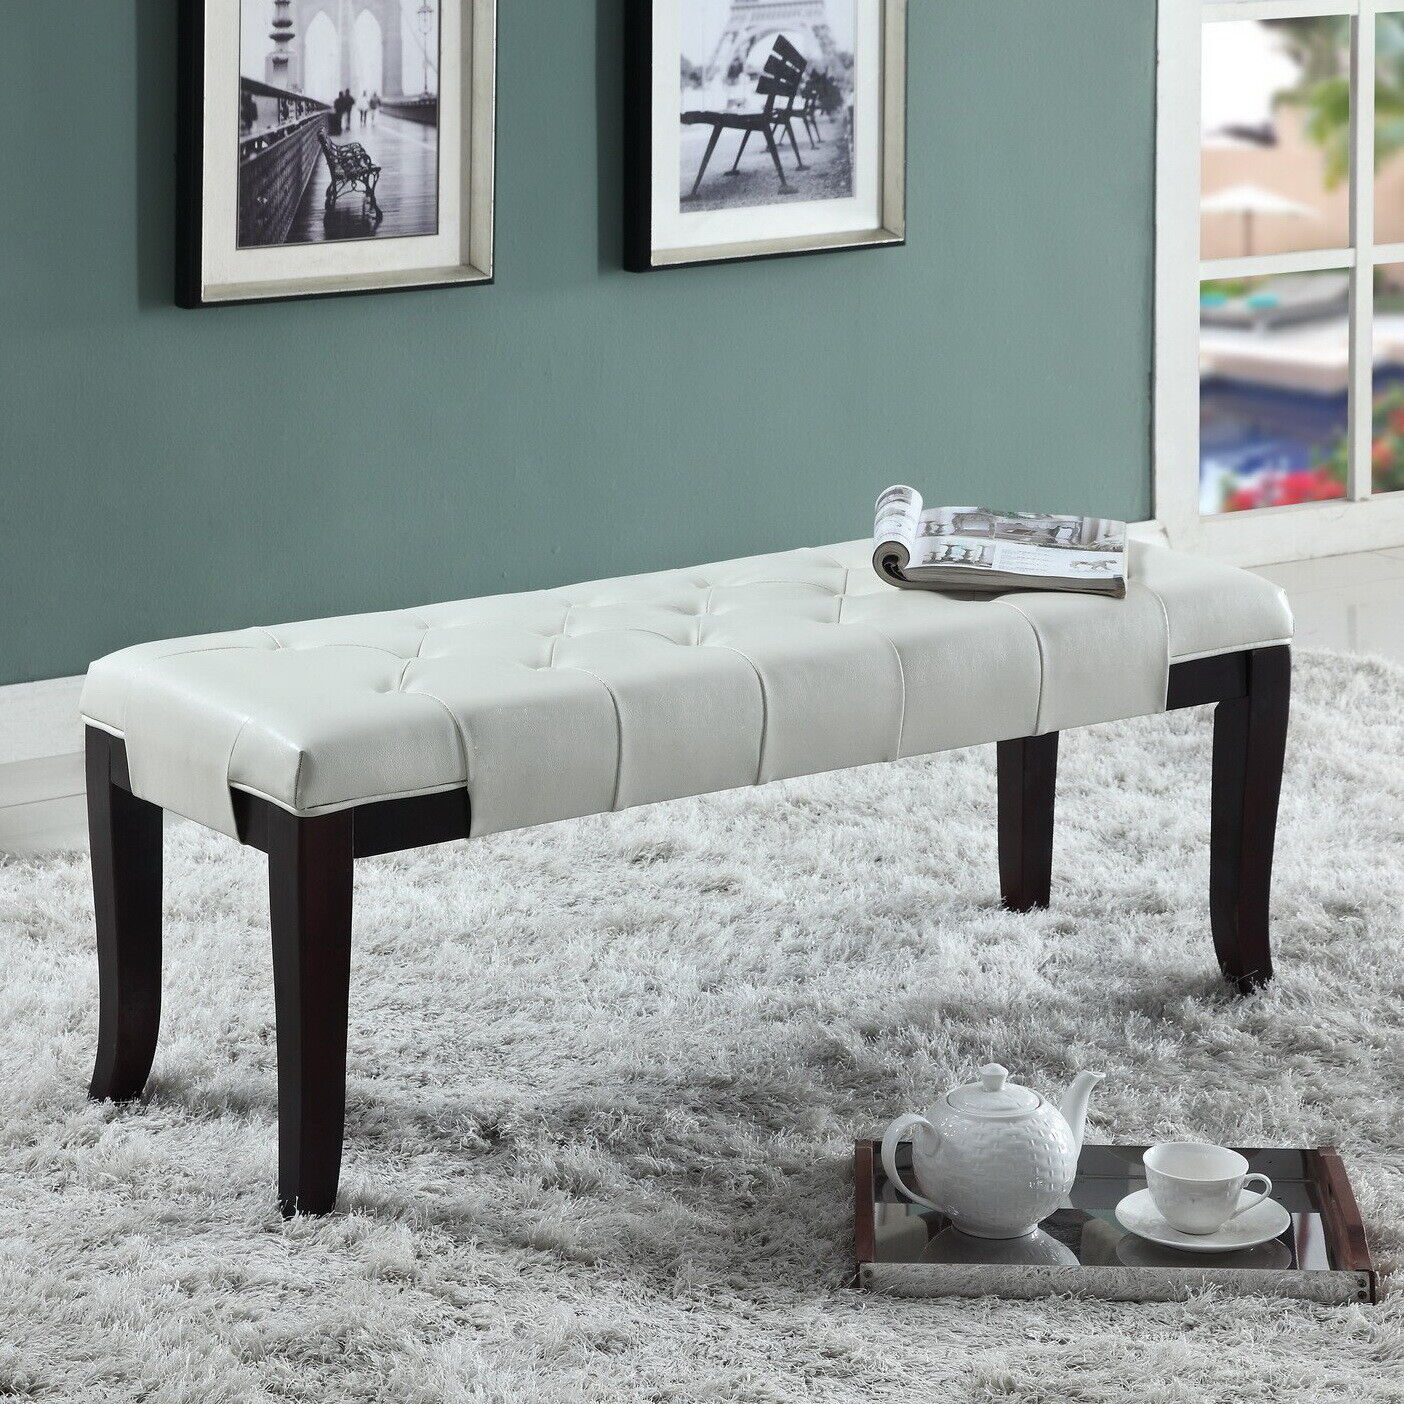 Modern Upholstered Bench White Black Leather Tufted Ottoman Curved Espresso Legs Ebay